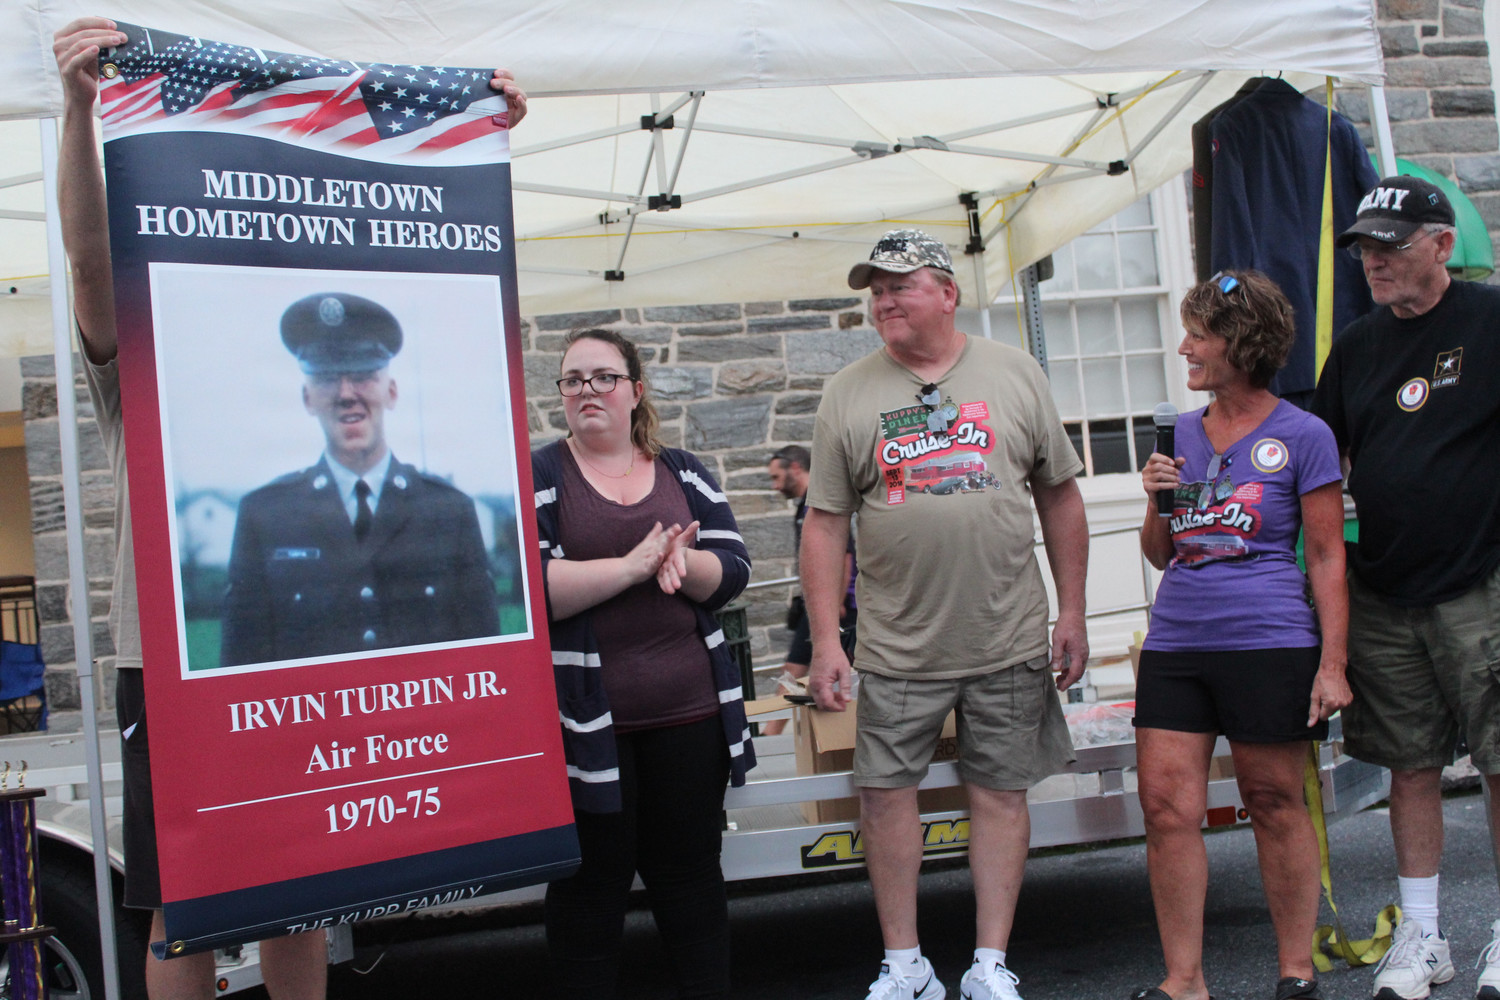 The Kupps had a Middletown Hometown Heroes banner made for Air Force Veteran Irvin Turpin Jr. (center). The banner was unveiled during Kuppy's Diner Cruise-in on September 13.